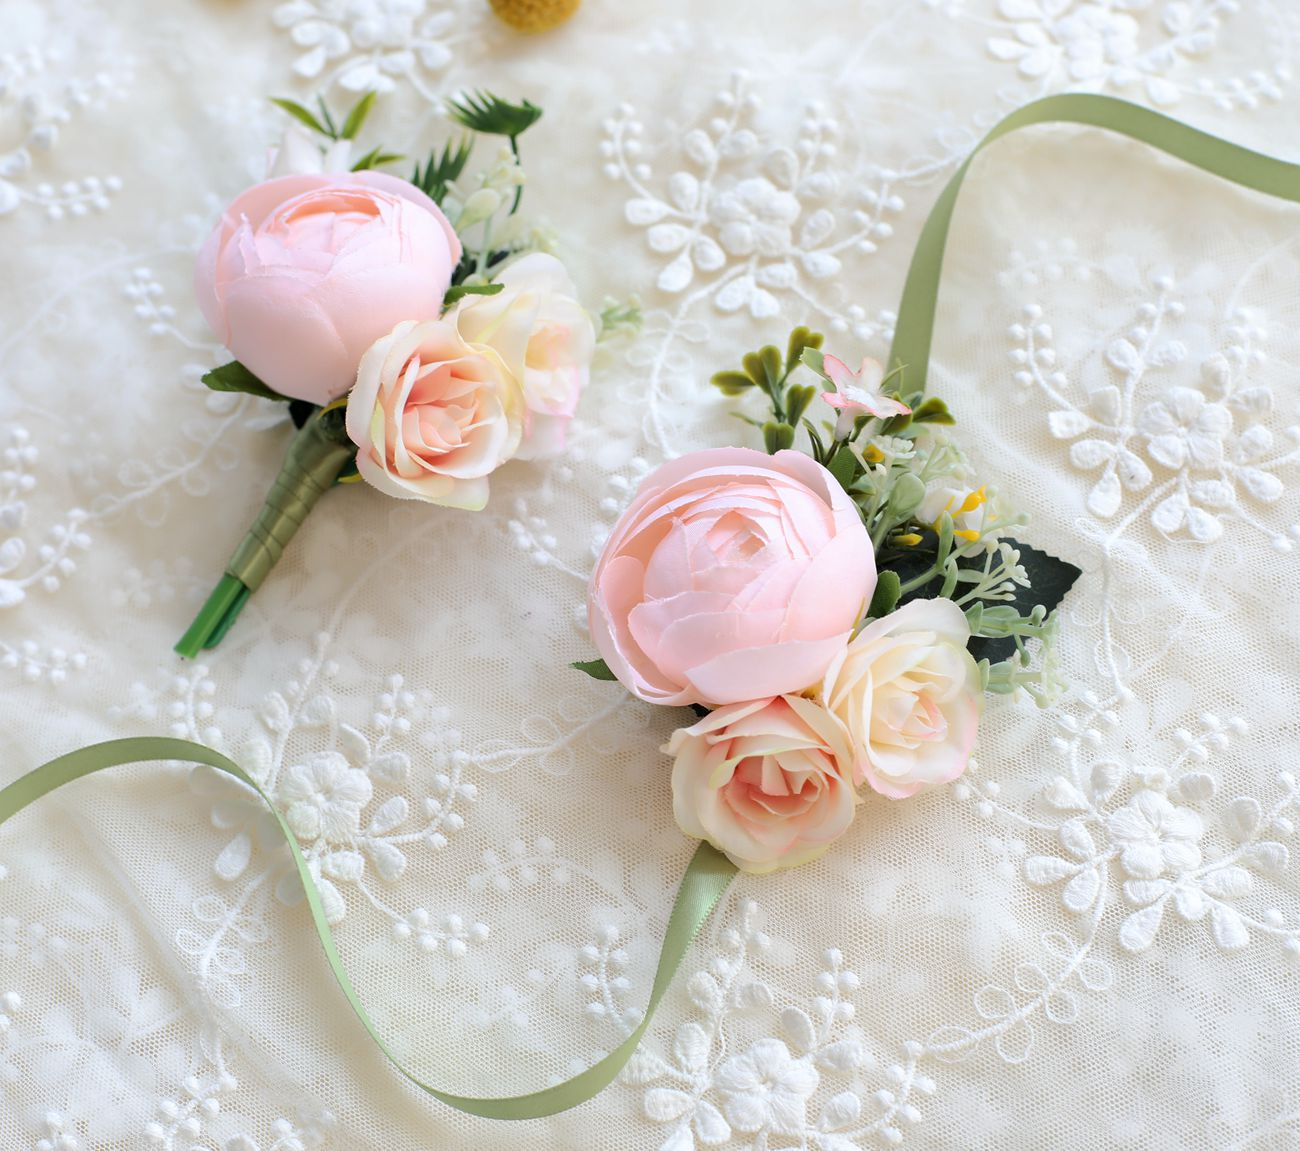 Flower Bride Boutonniere Wedding Bouquet Flowers Bridesmaids Accessories Corsage Bridal Bouquets Pearl Corsages Pink Hand Flower